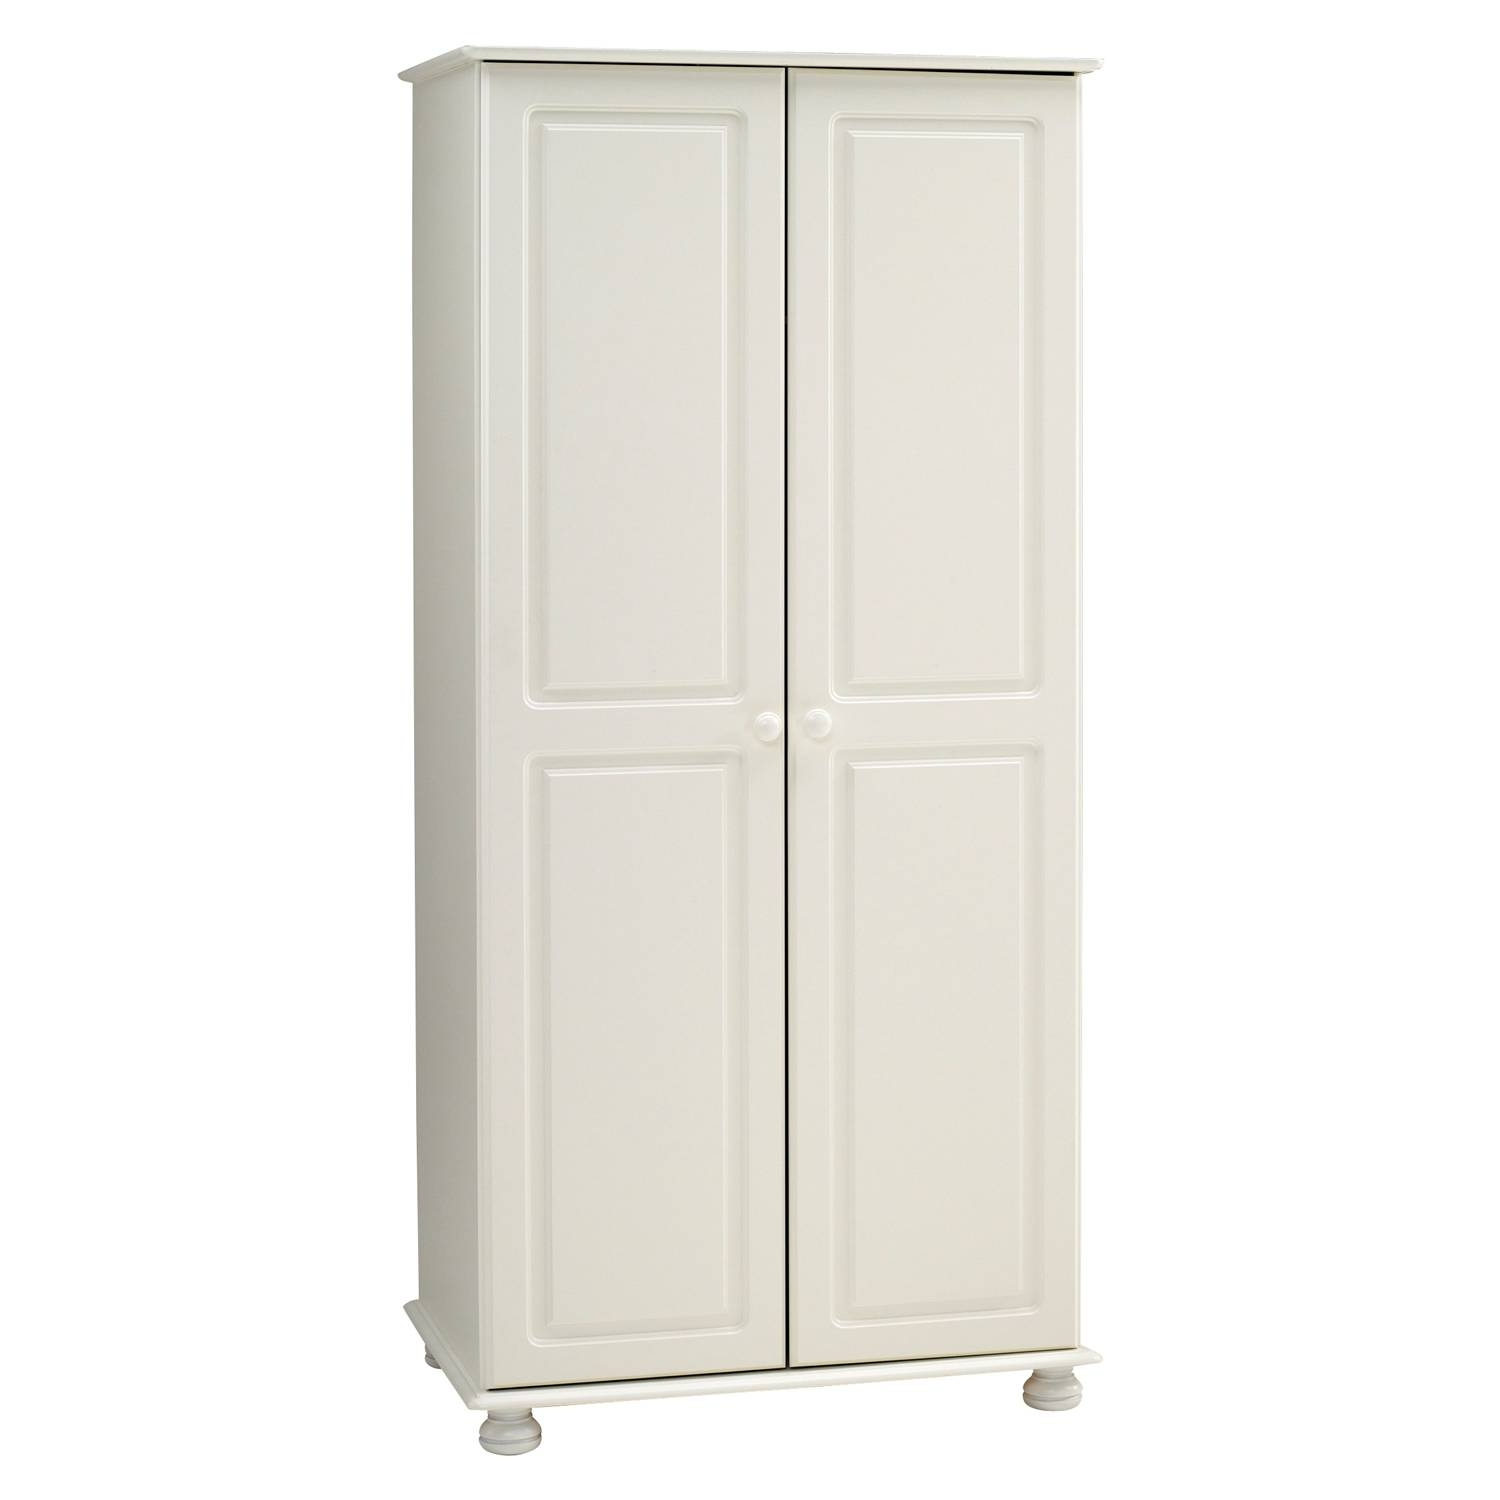 Richmond 3 Door 4 Drawer Wardrobe White - Simply Furniture throughout Richmond Wardrobes (Image 5 of 15)